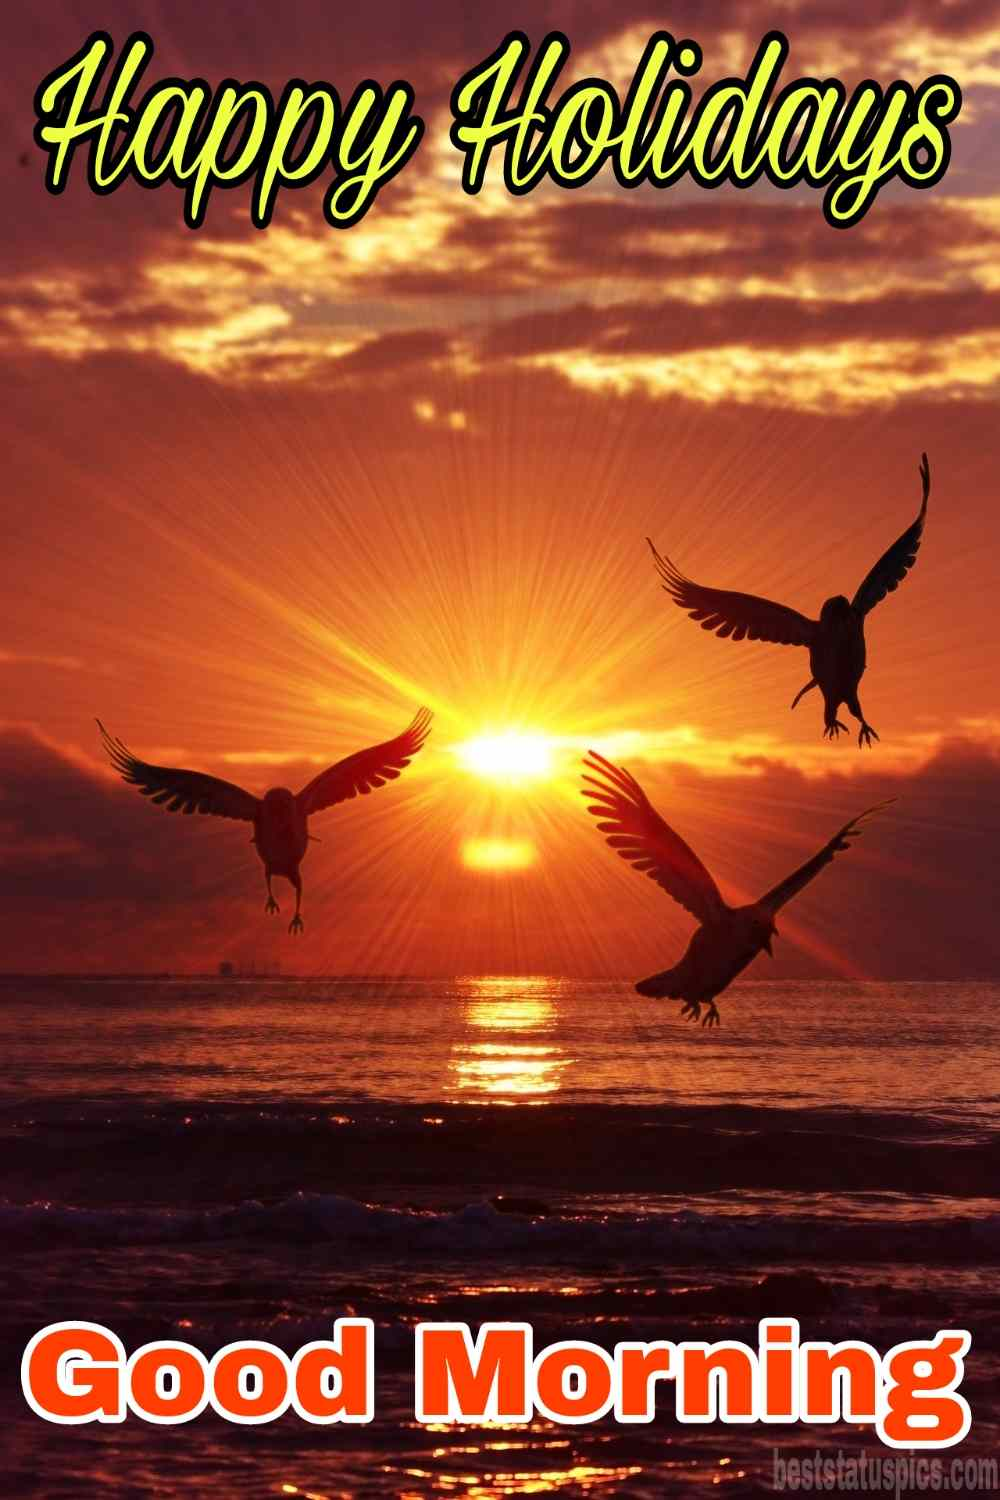 Happy holidays 2022 and good morning wishes images with birds, sea and sunrise